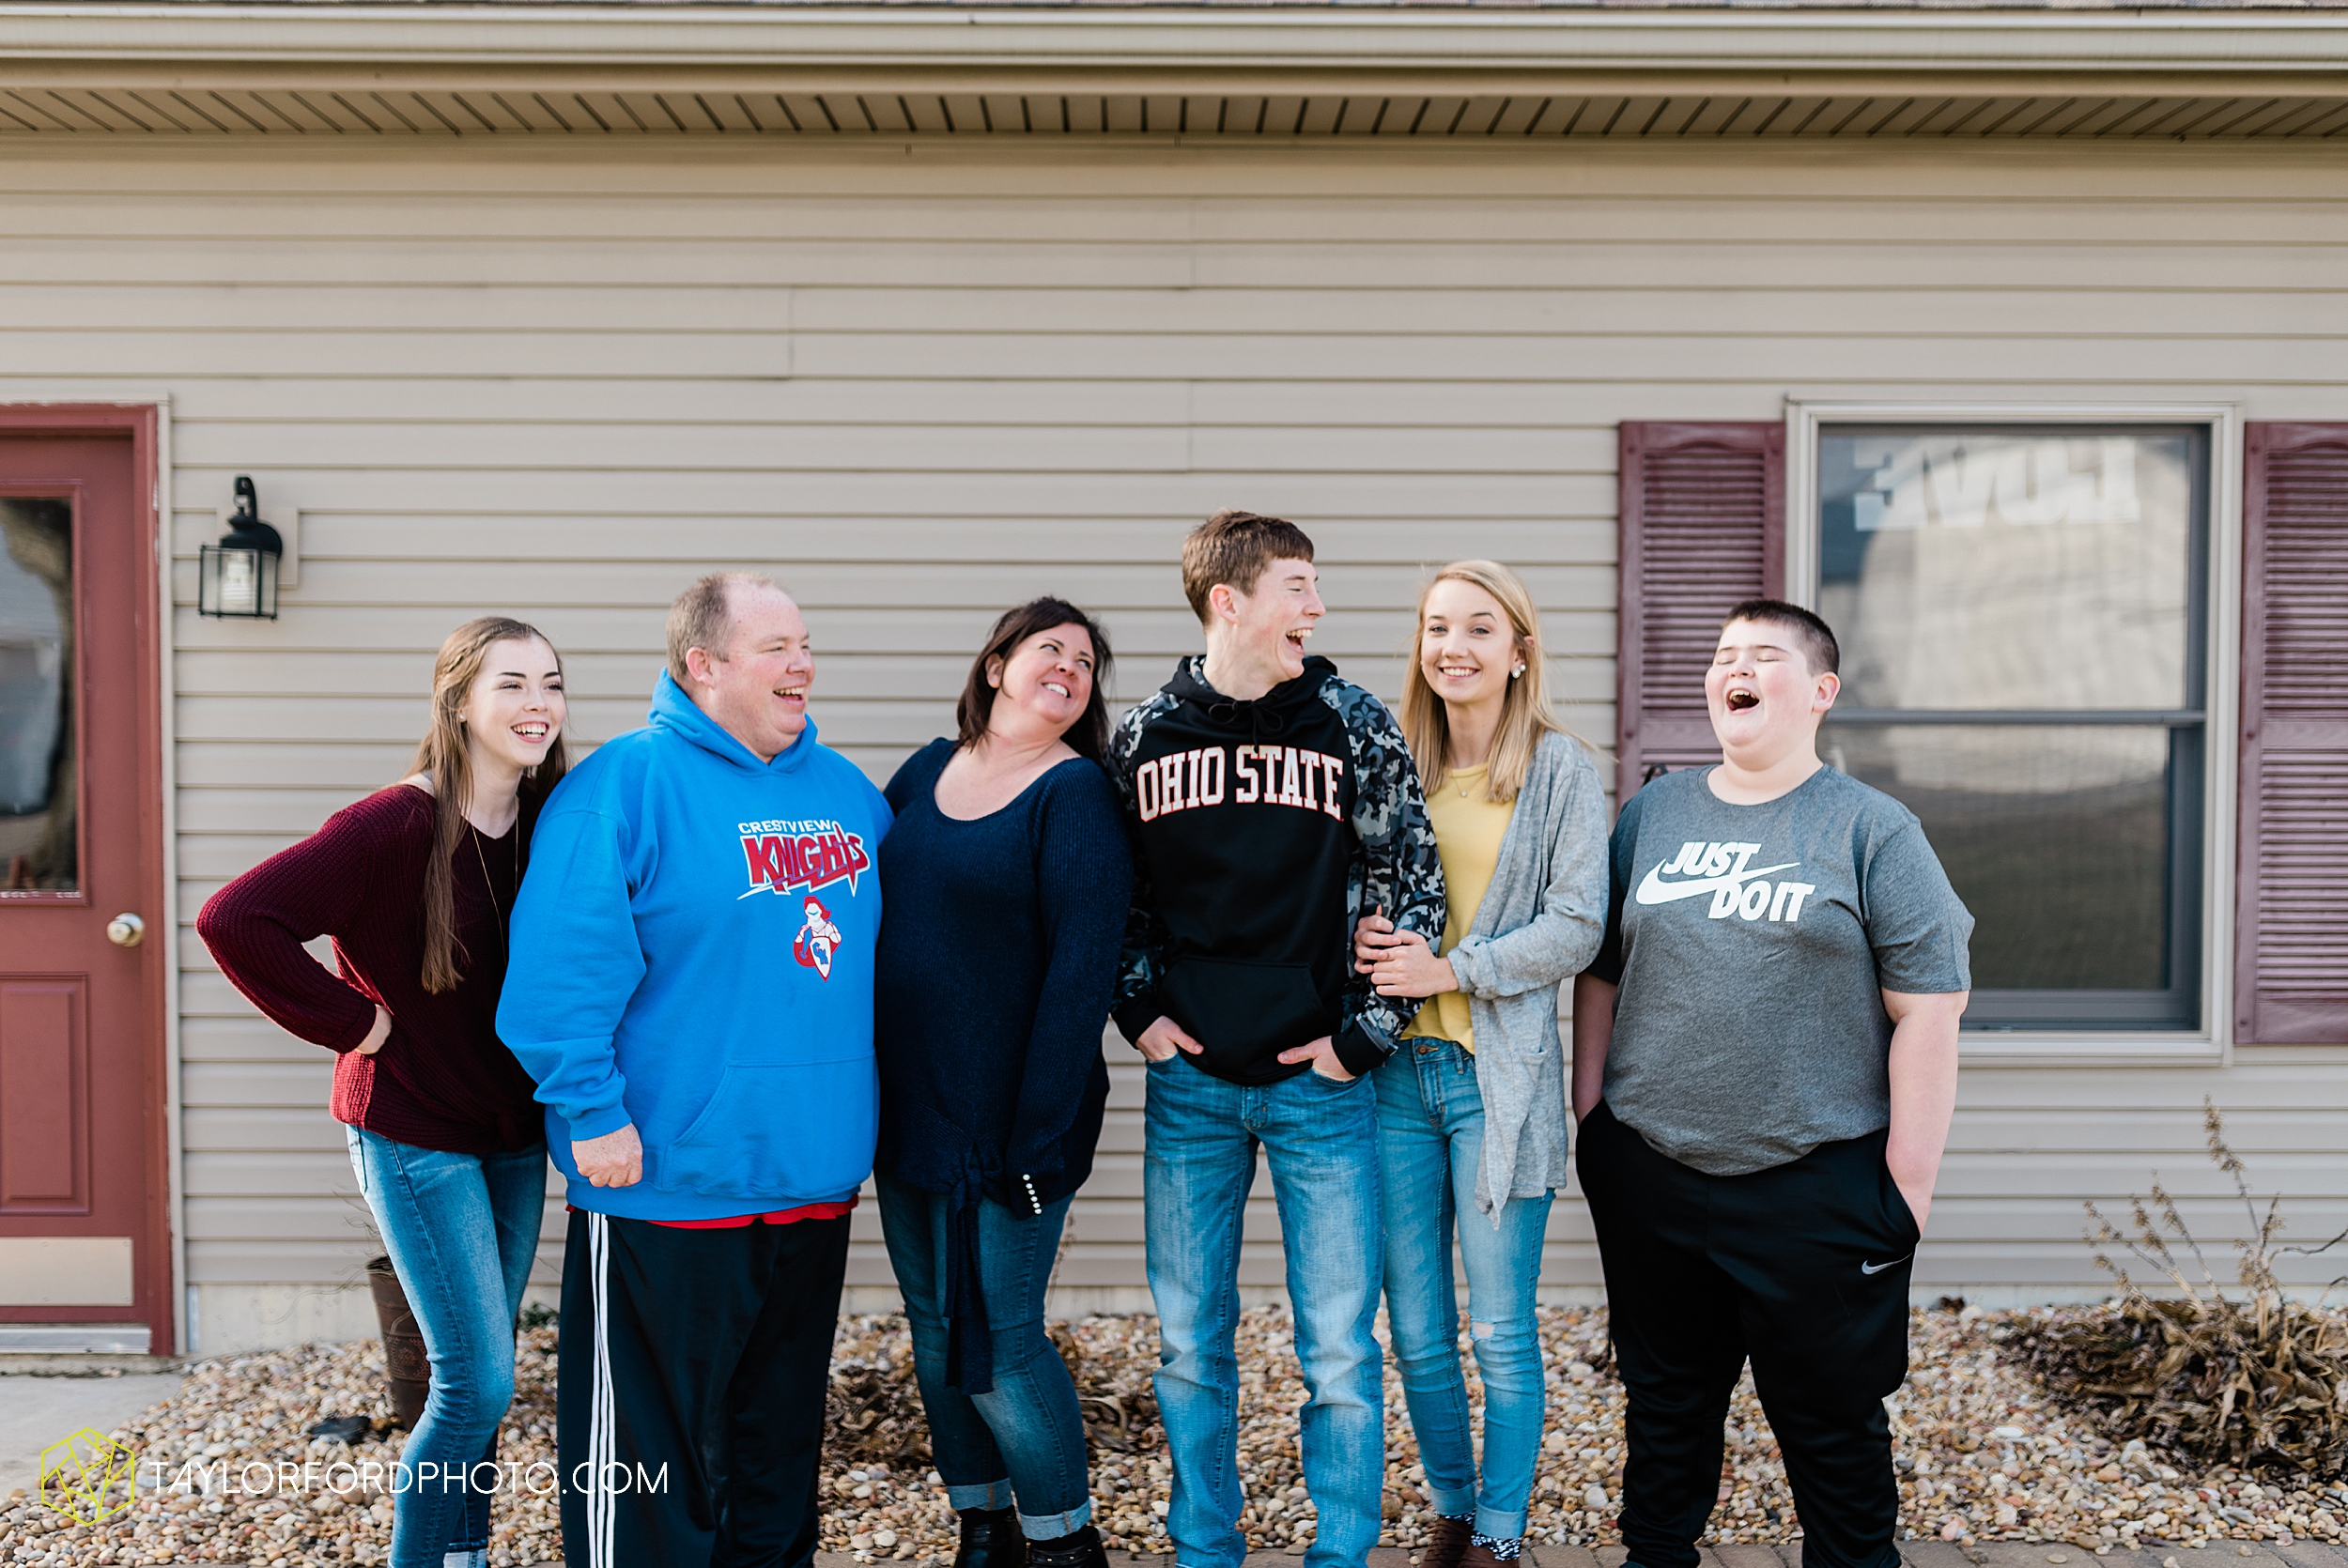 fortney-matthews-extended-family-van-wert-ohio-at-home-family-farm-photography-taylor-ford-hirschy-photographer_2023.jpg